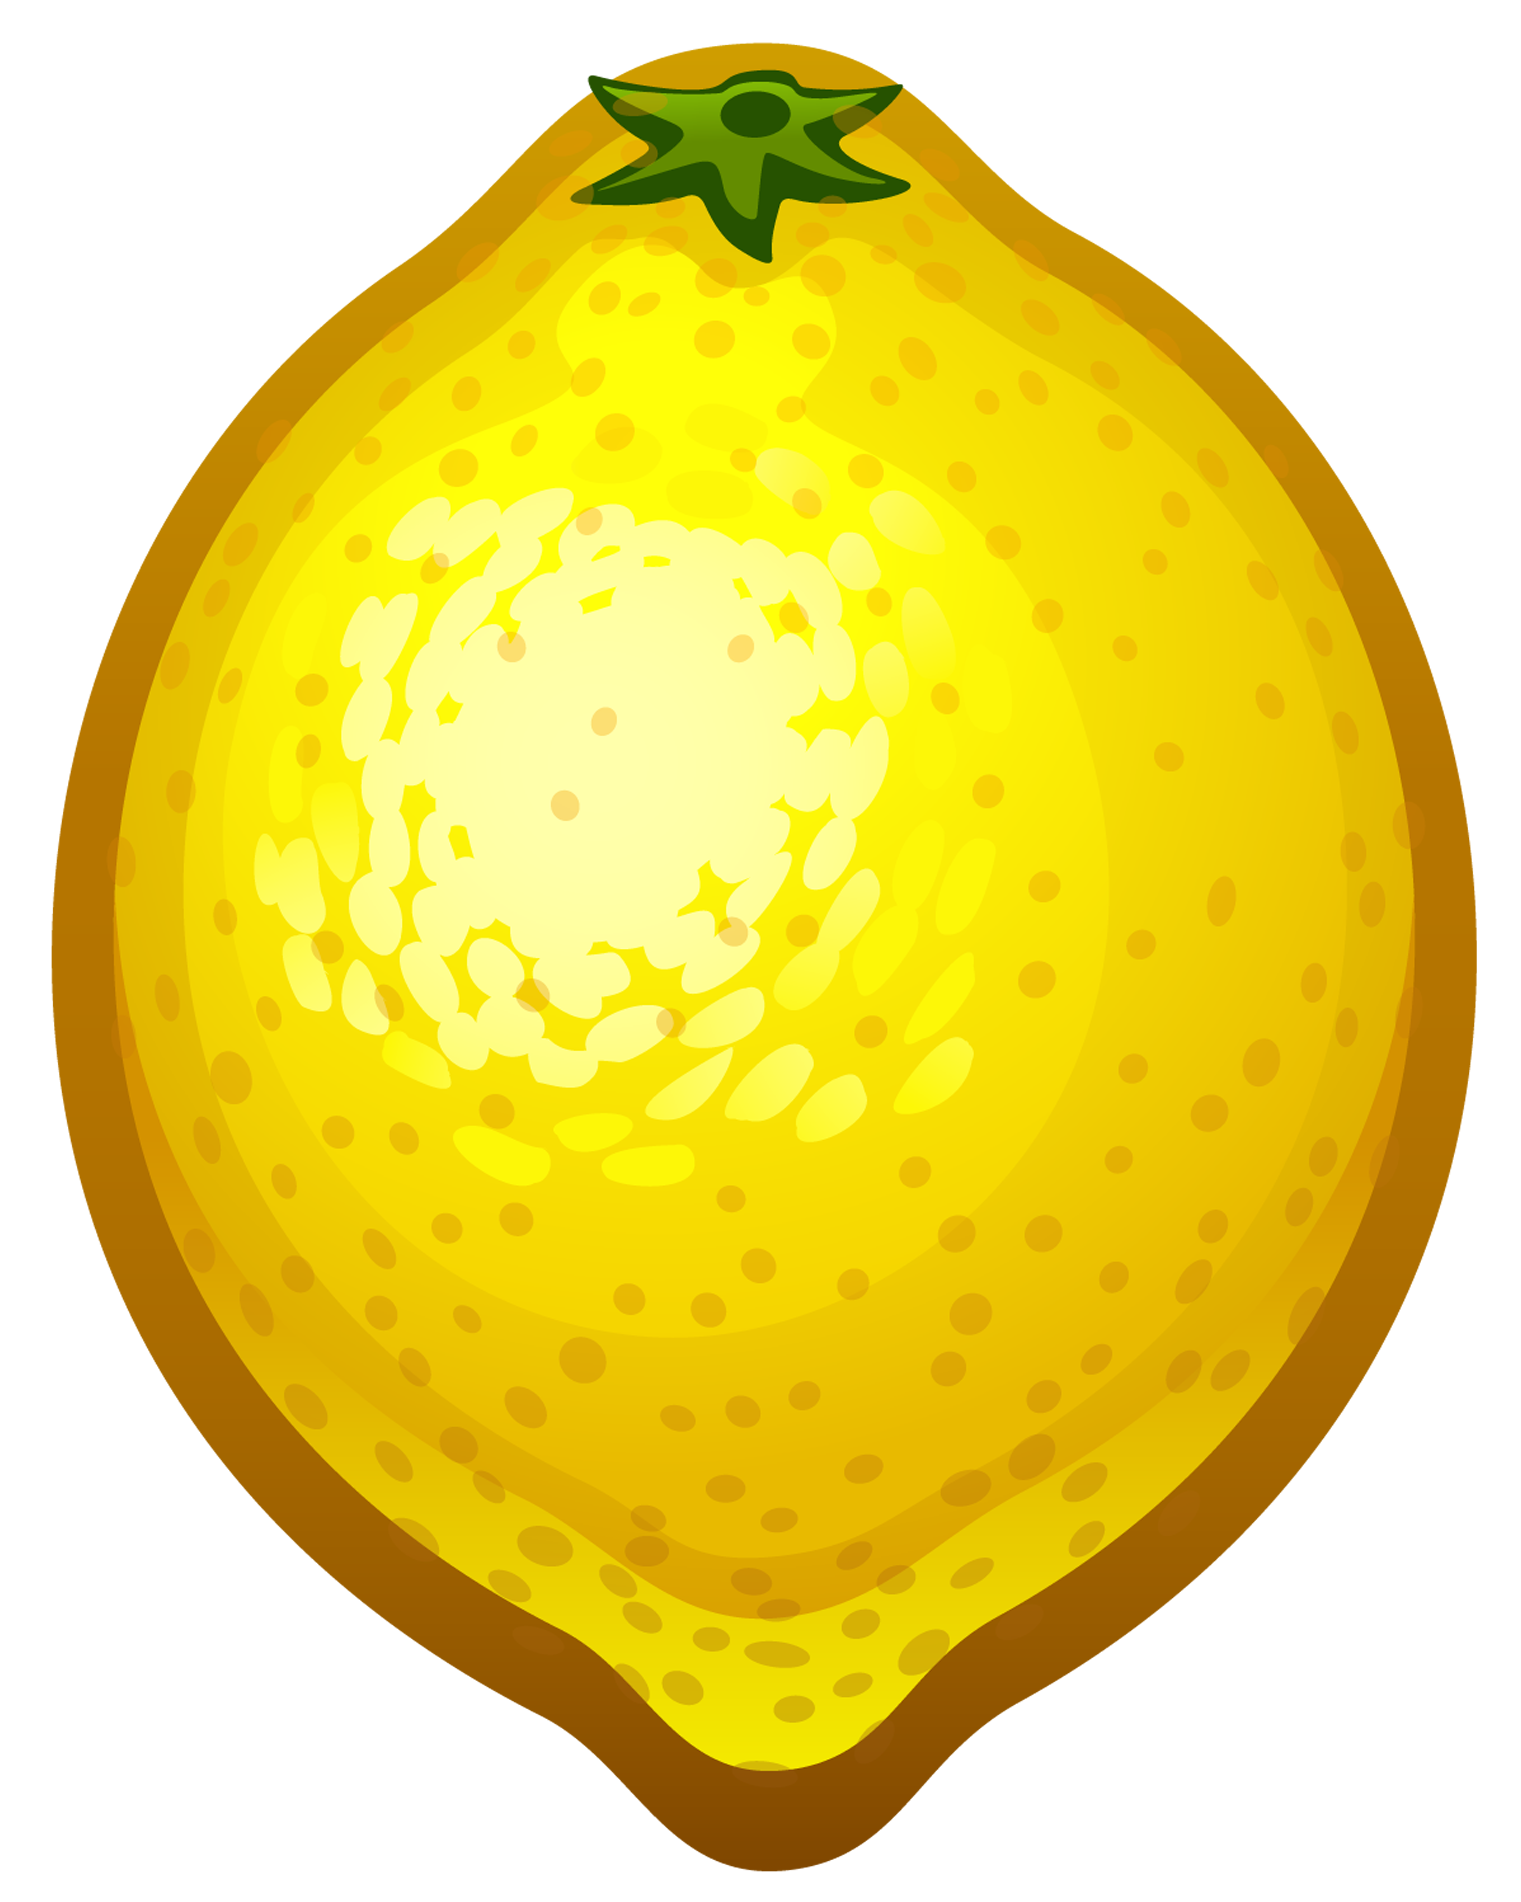 Painted Lemon PNG Clipart-Painted Lemon PNG Clipart-14